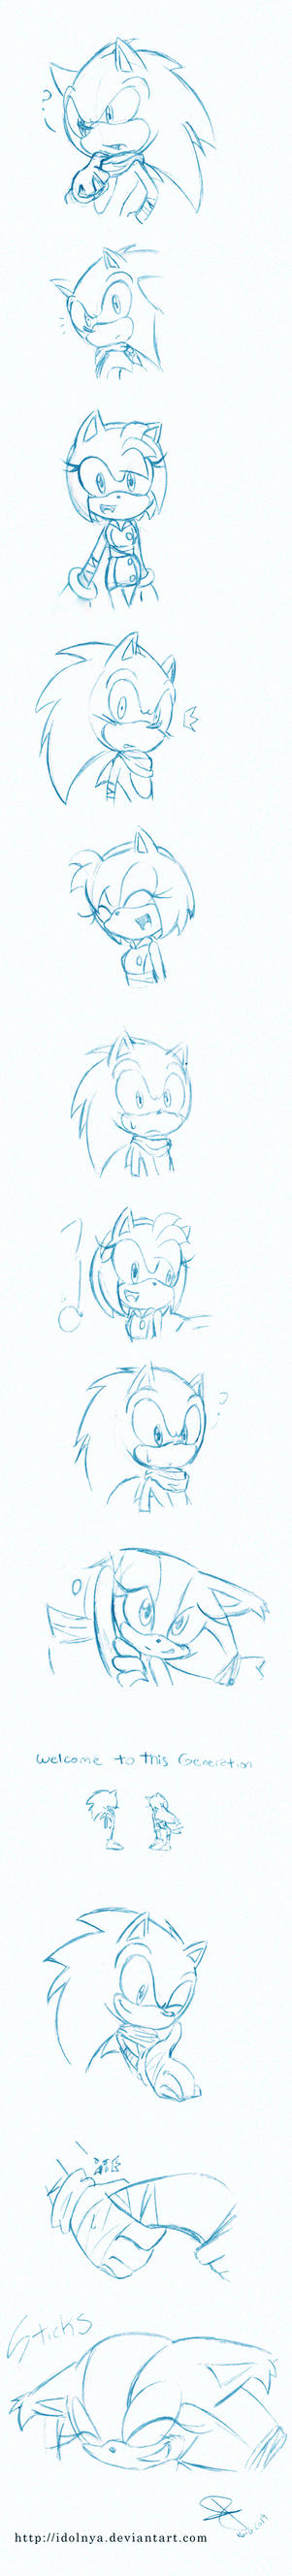 Welcome To Sonic Boom by idolnya